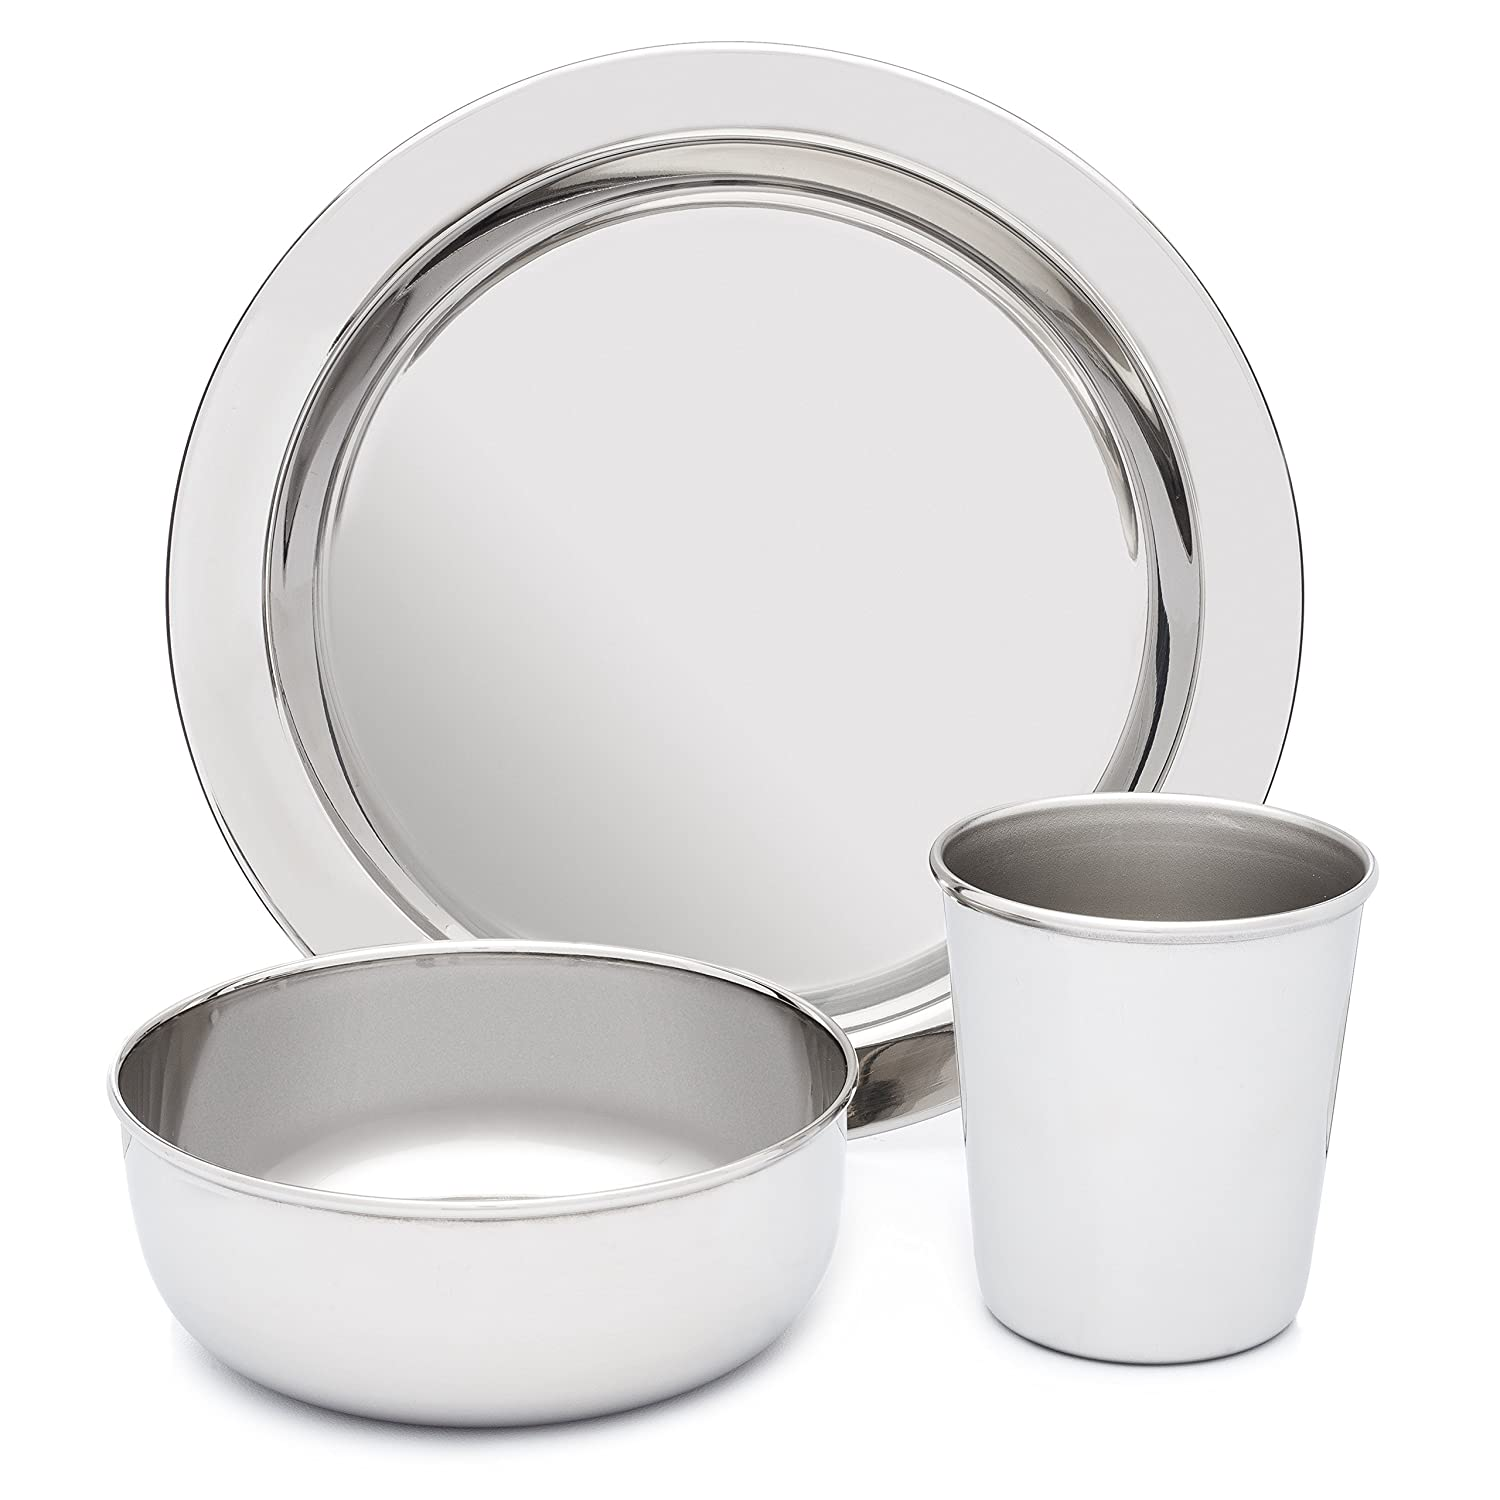 Amazon.com  Stainless Steel Dish Set for Kids with Plate Bowl and Cup - BPA Free - by HumanCentric  Baby  sc 1 st  Amazon.com & Amazon.com : Stainless Steel Dish Set for Kids with Plate Bowl ...